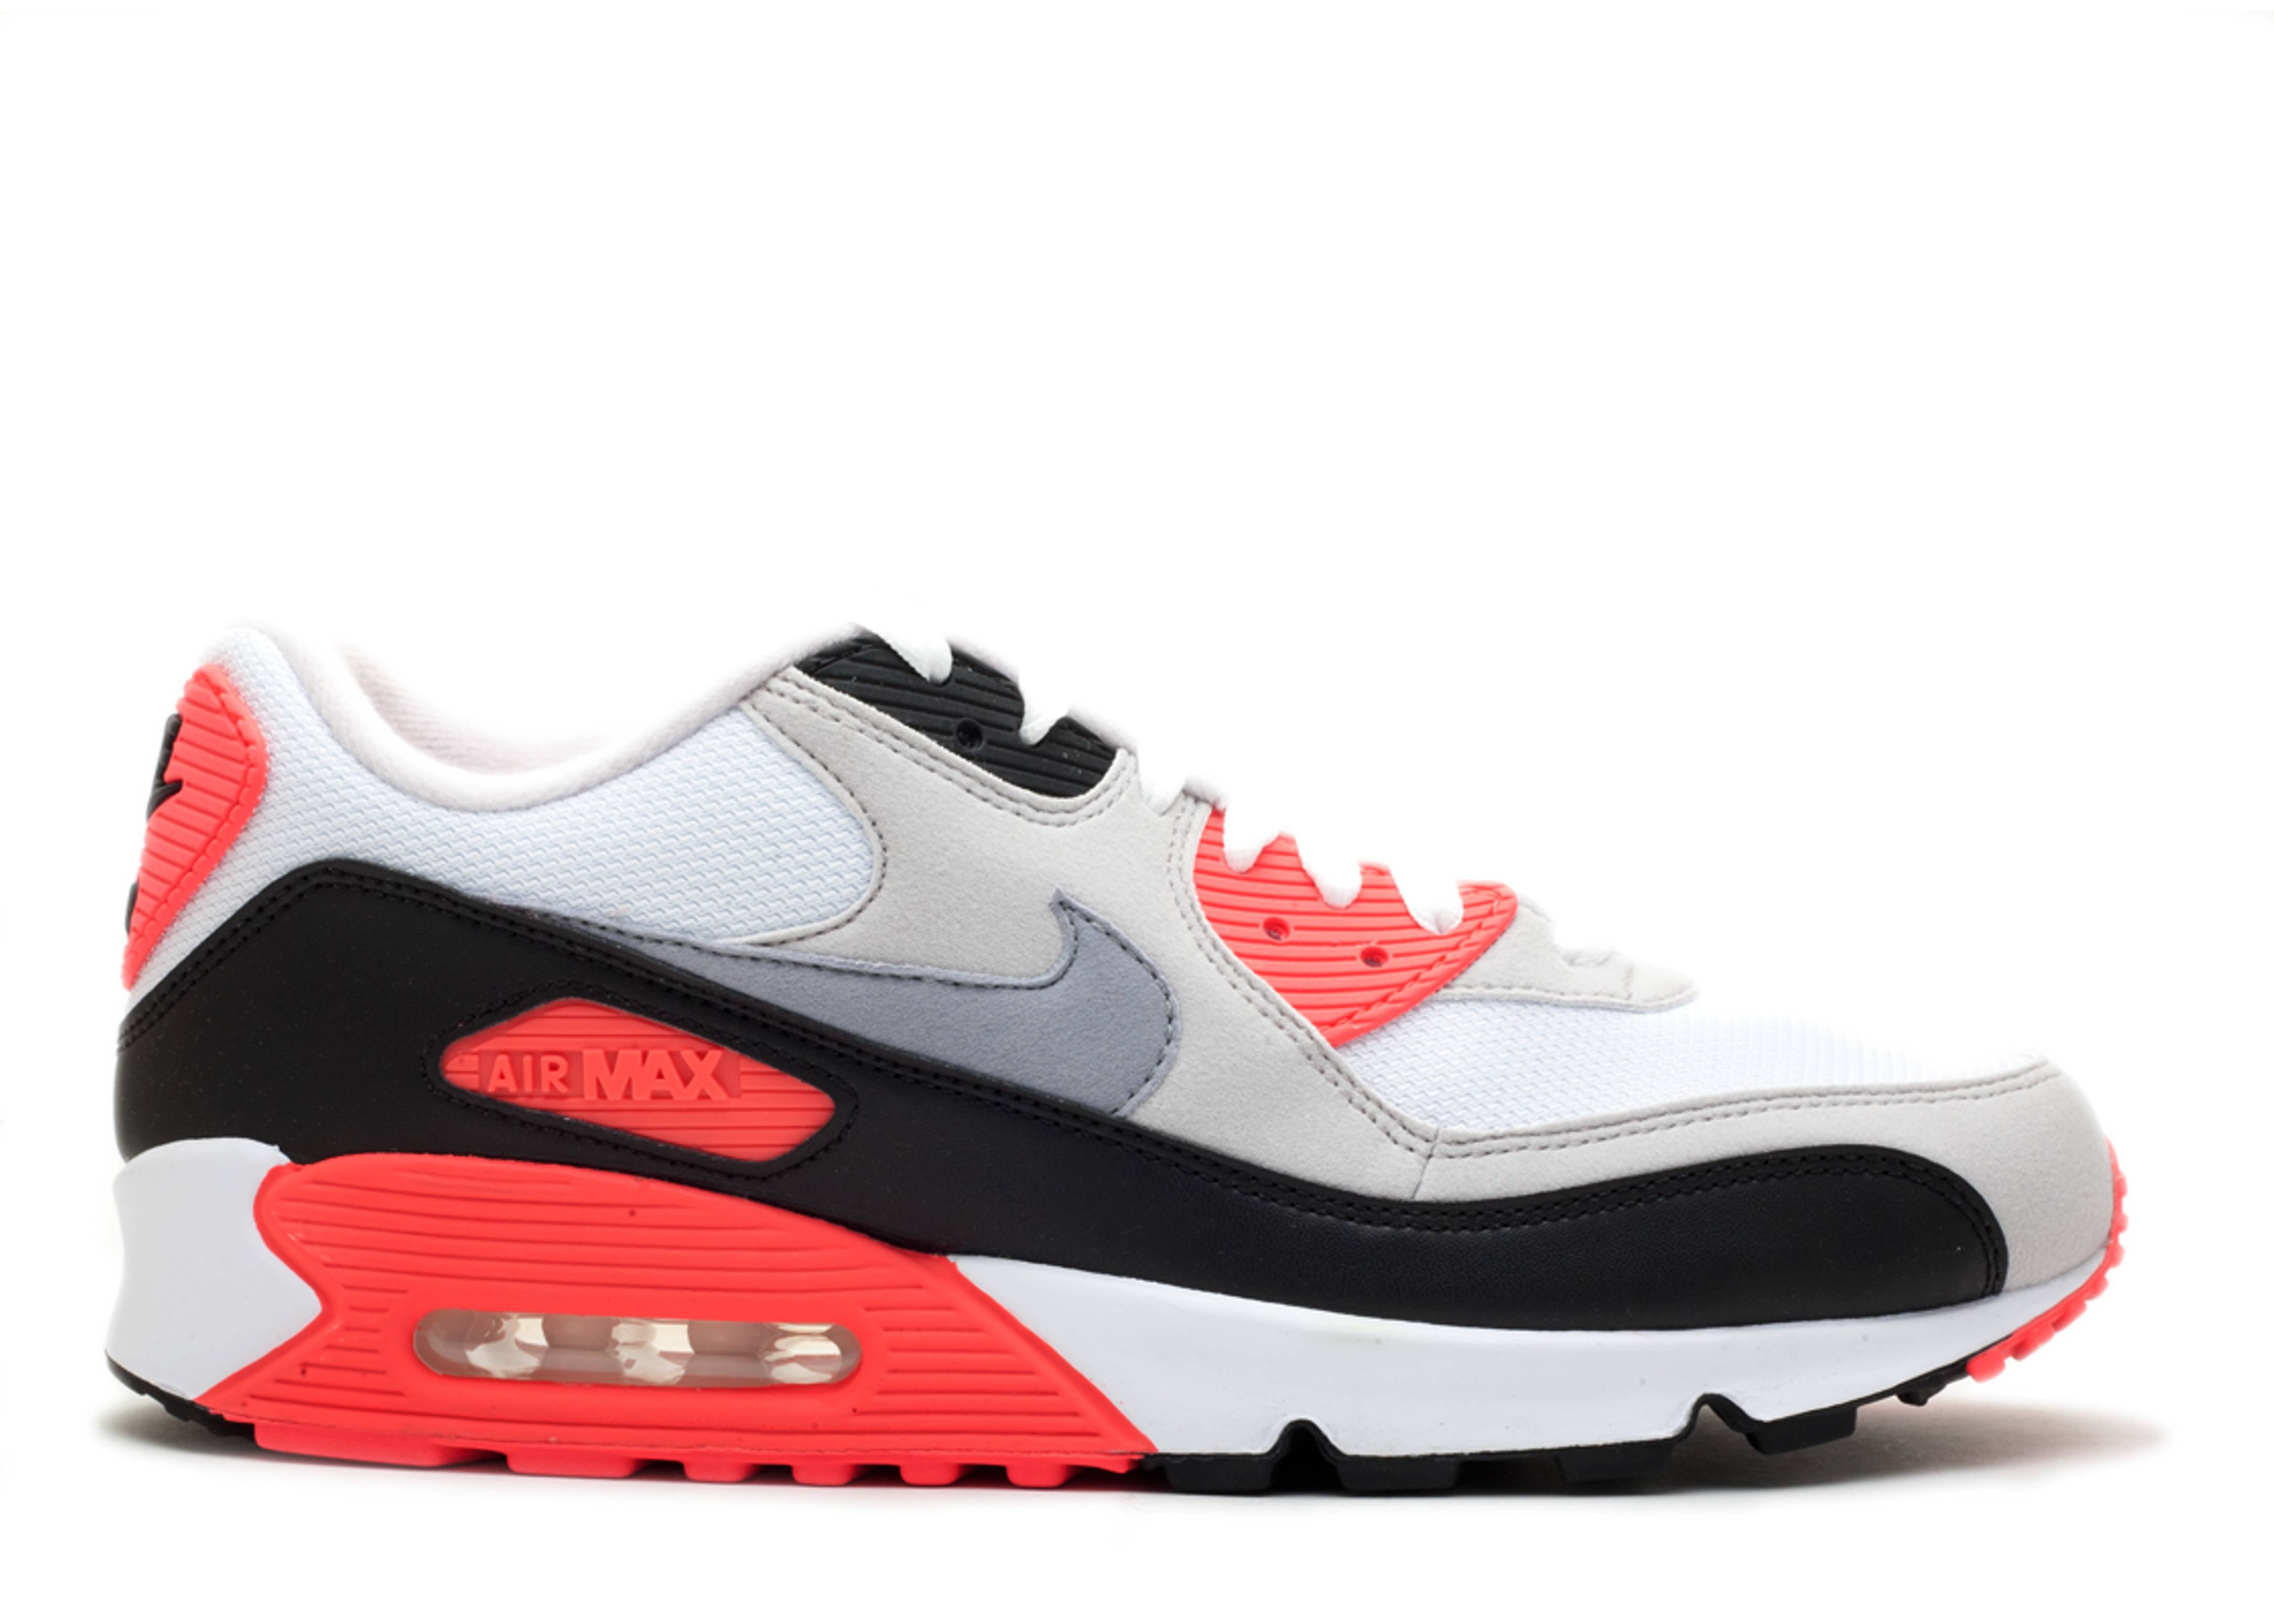 """air max 90 """"infrared 2010 release"""""""